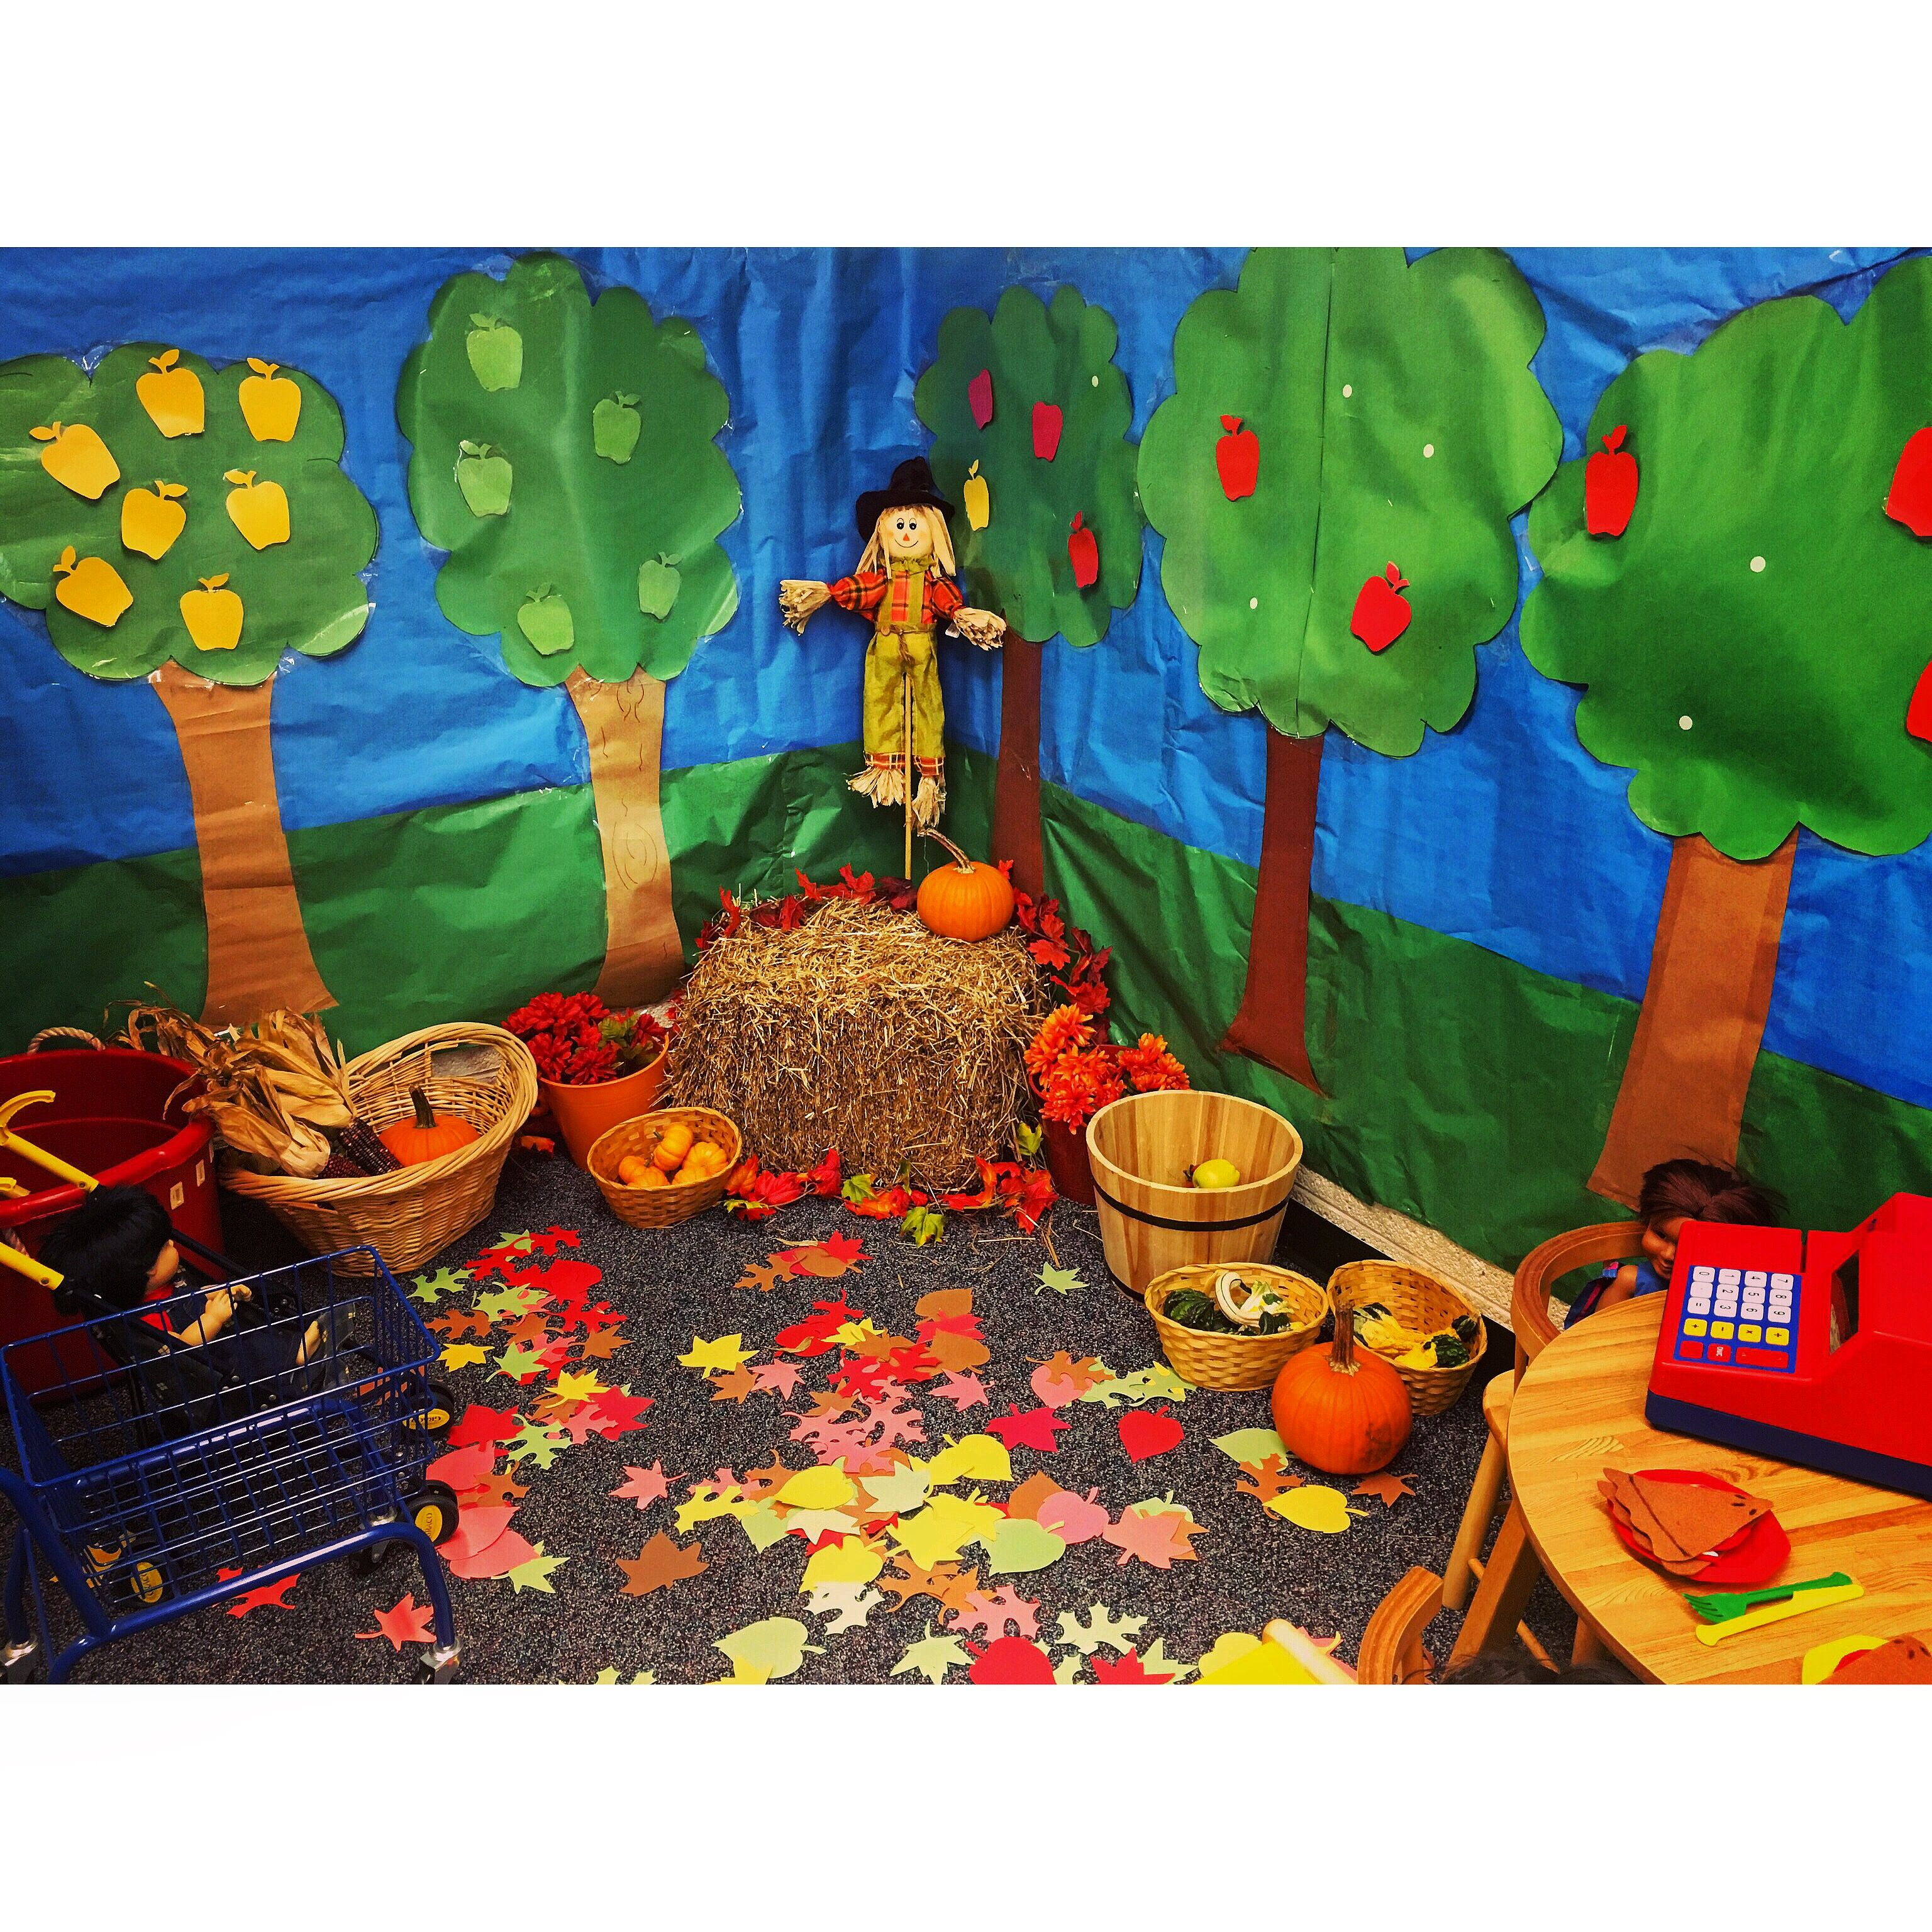 Fall Autumn Dramatic Play For Preschoolers